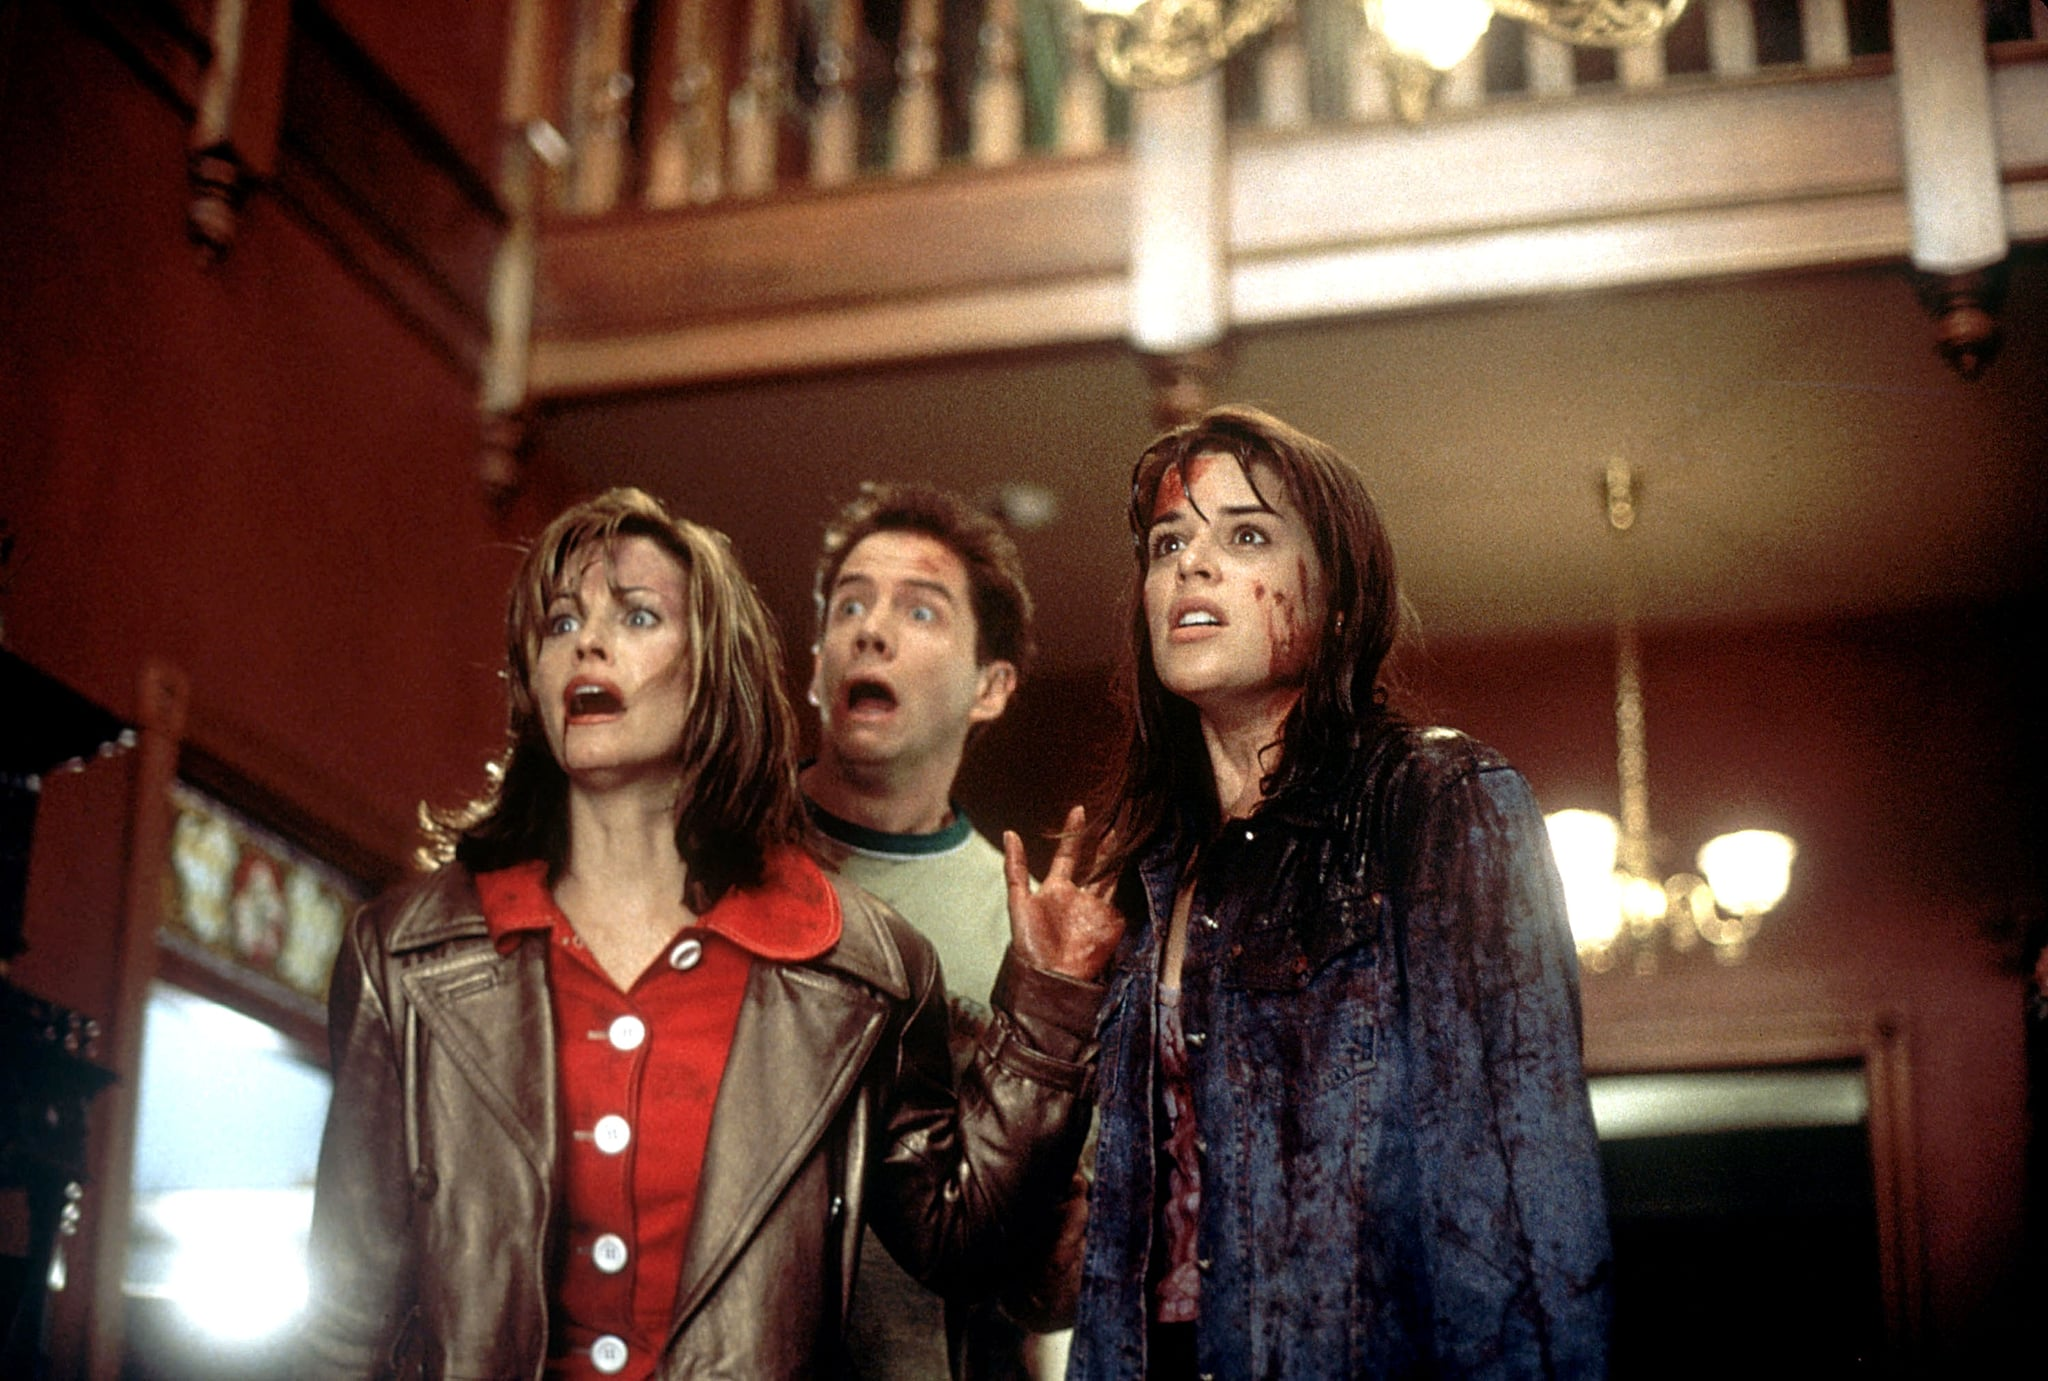 SCREAM, Courteney Cox, Jamie Kennedy, Neve Campbell, 1996, (c) Dimension/courtesy Everett Collection